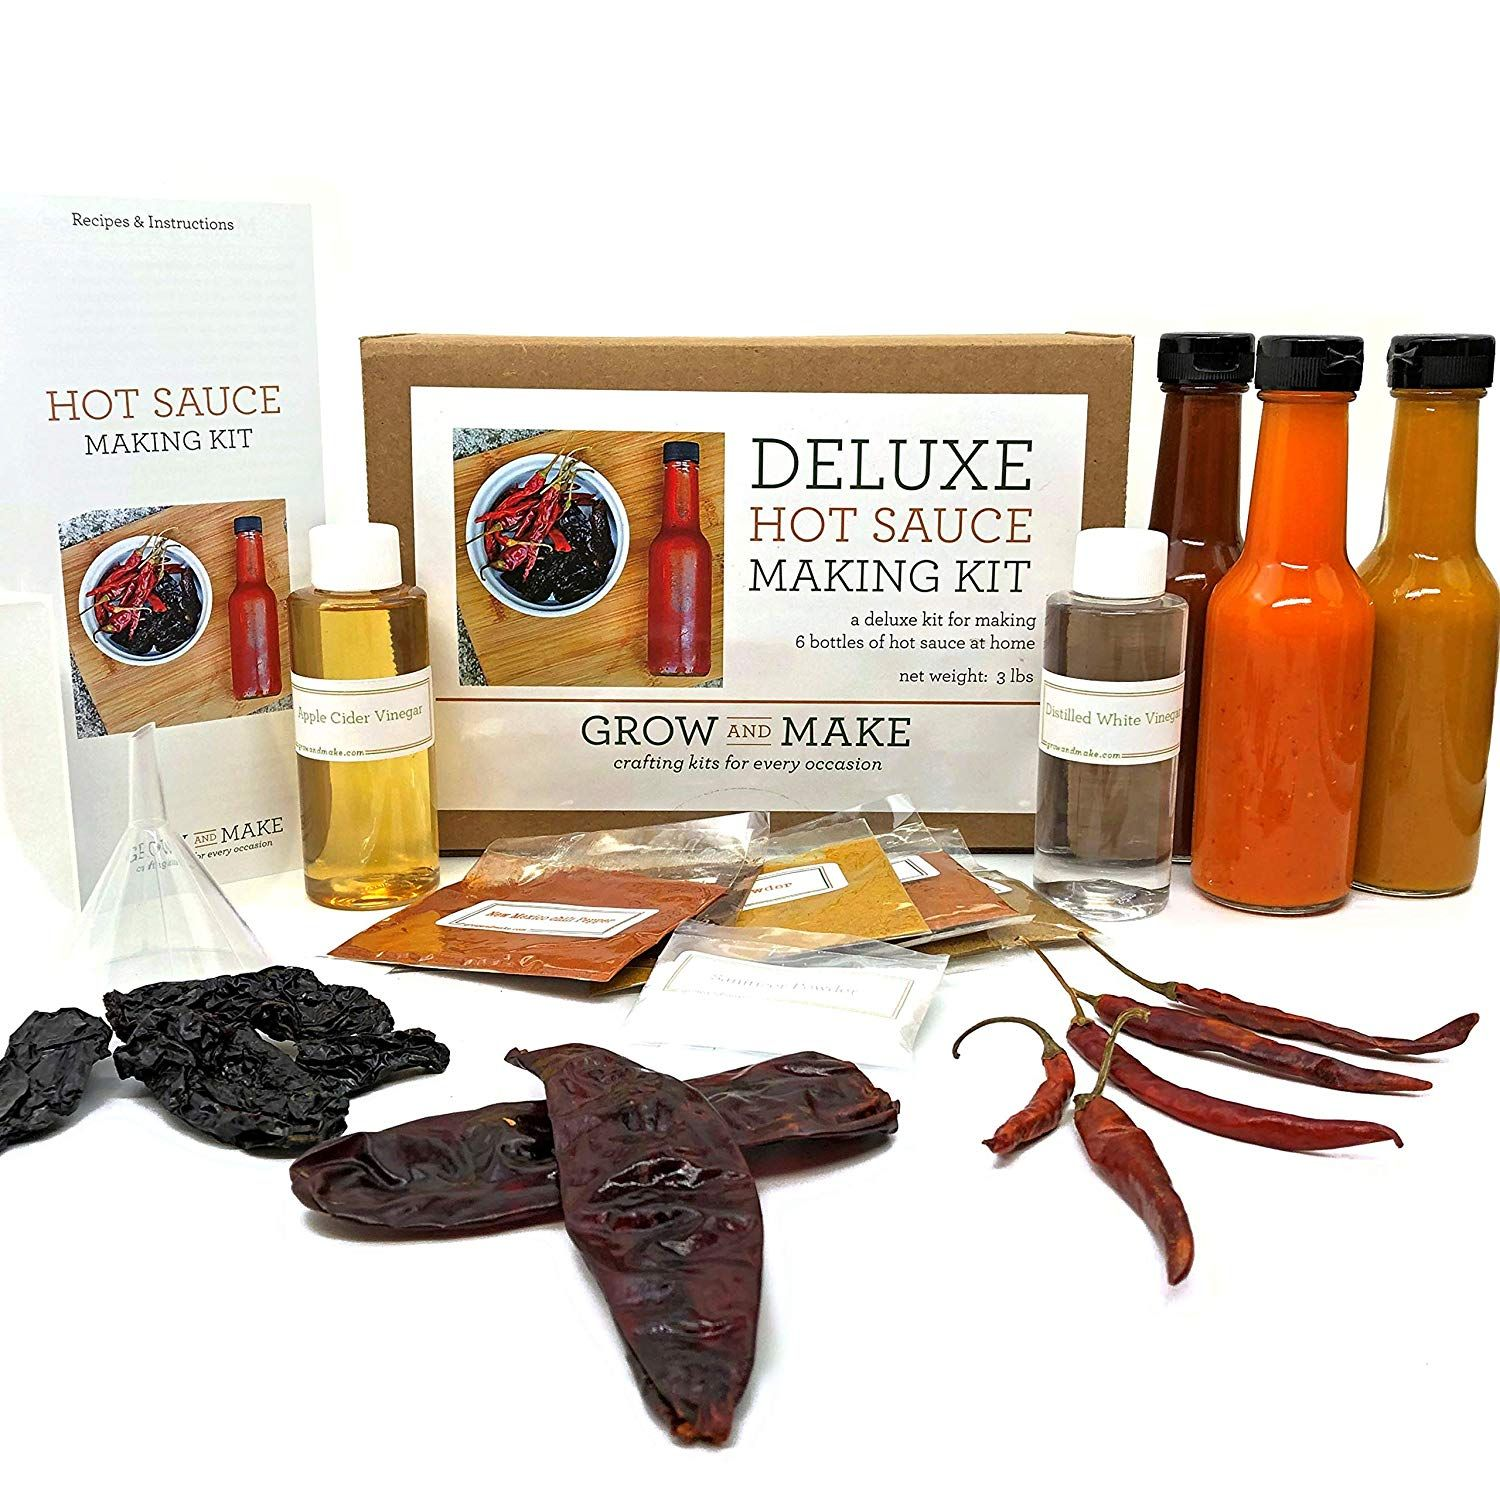 Hot Sauce Making Kit (With images) Hot sauce kit, Spicy